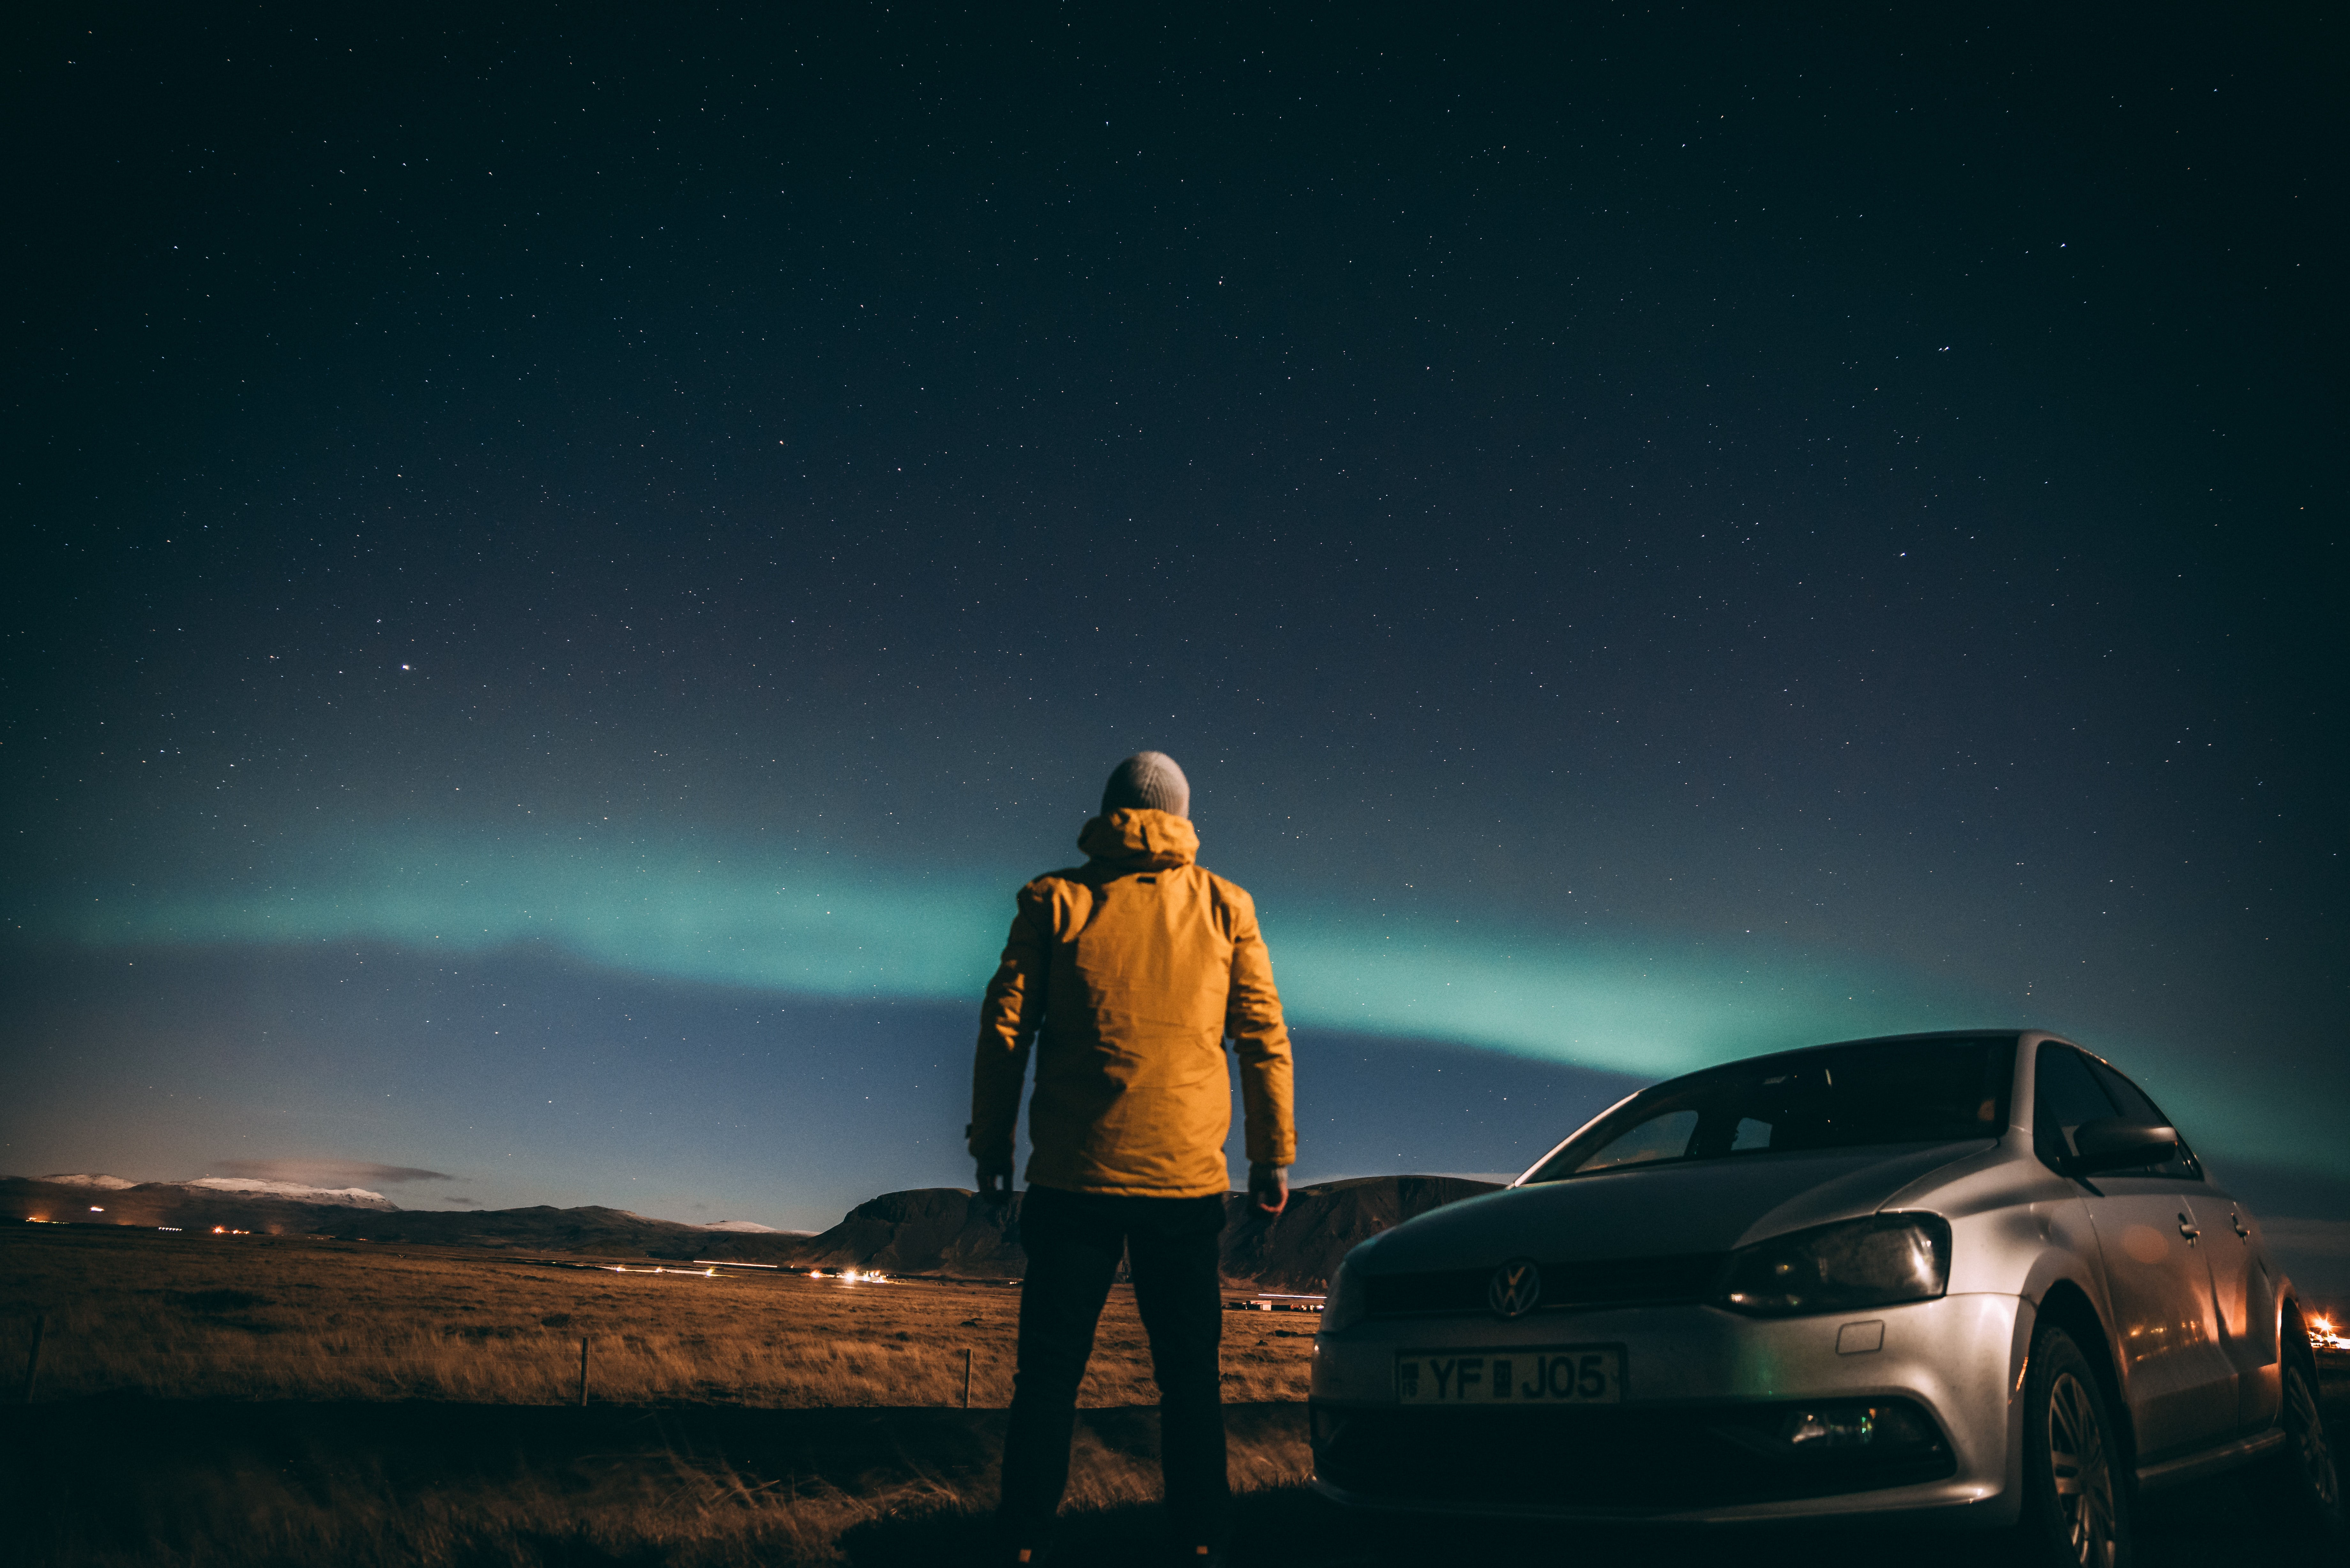 man standing beside gray car while watching Aurora Borealis phenomenon